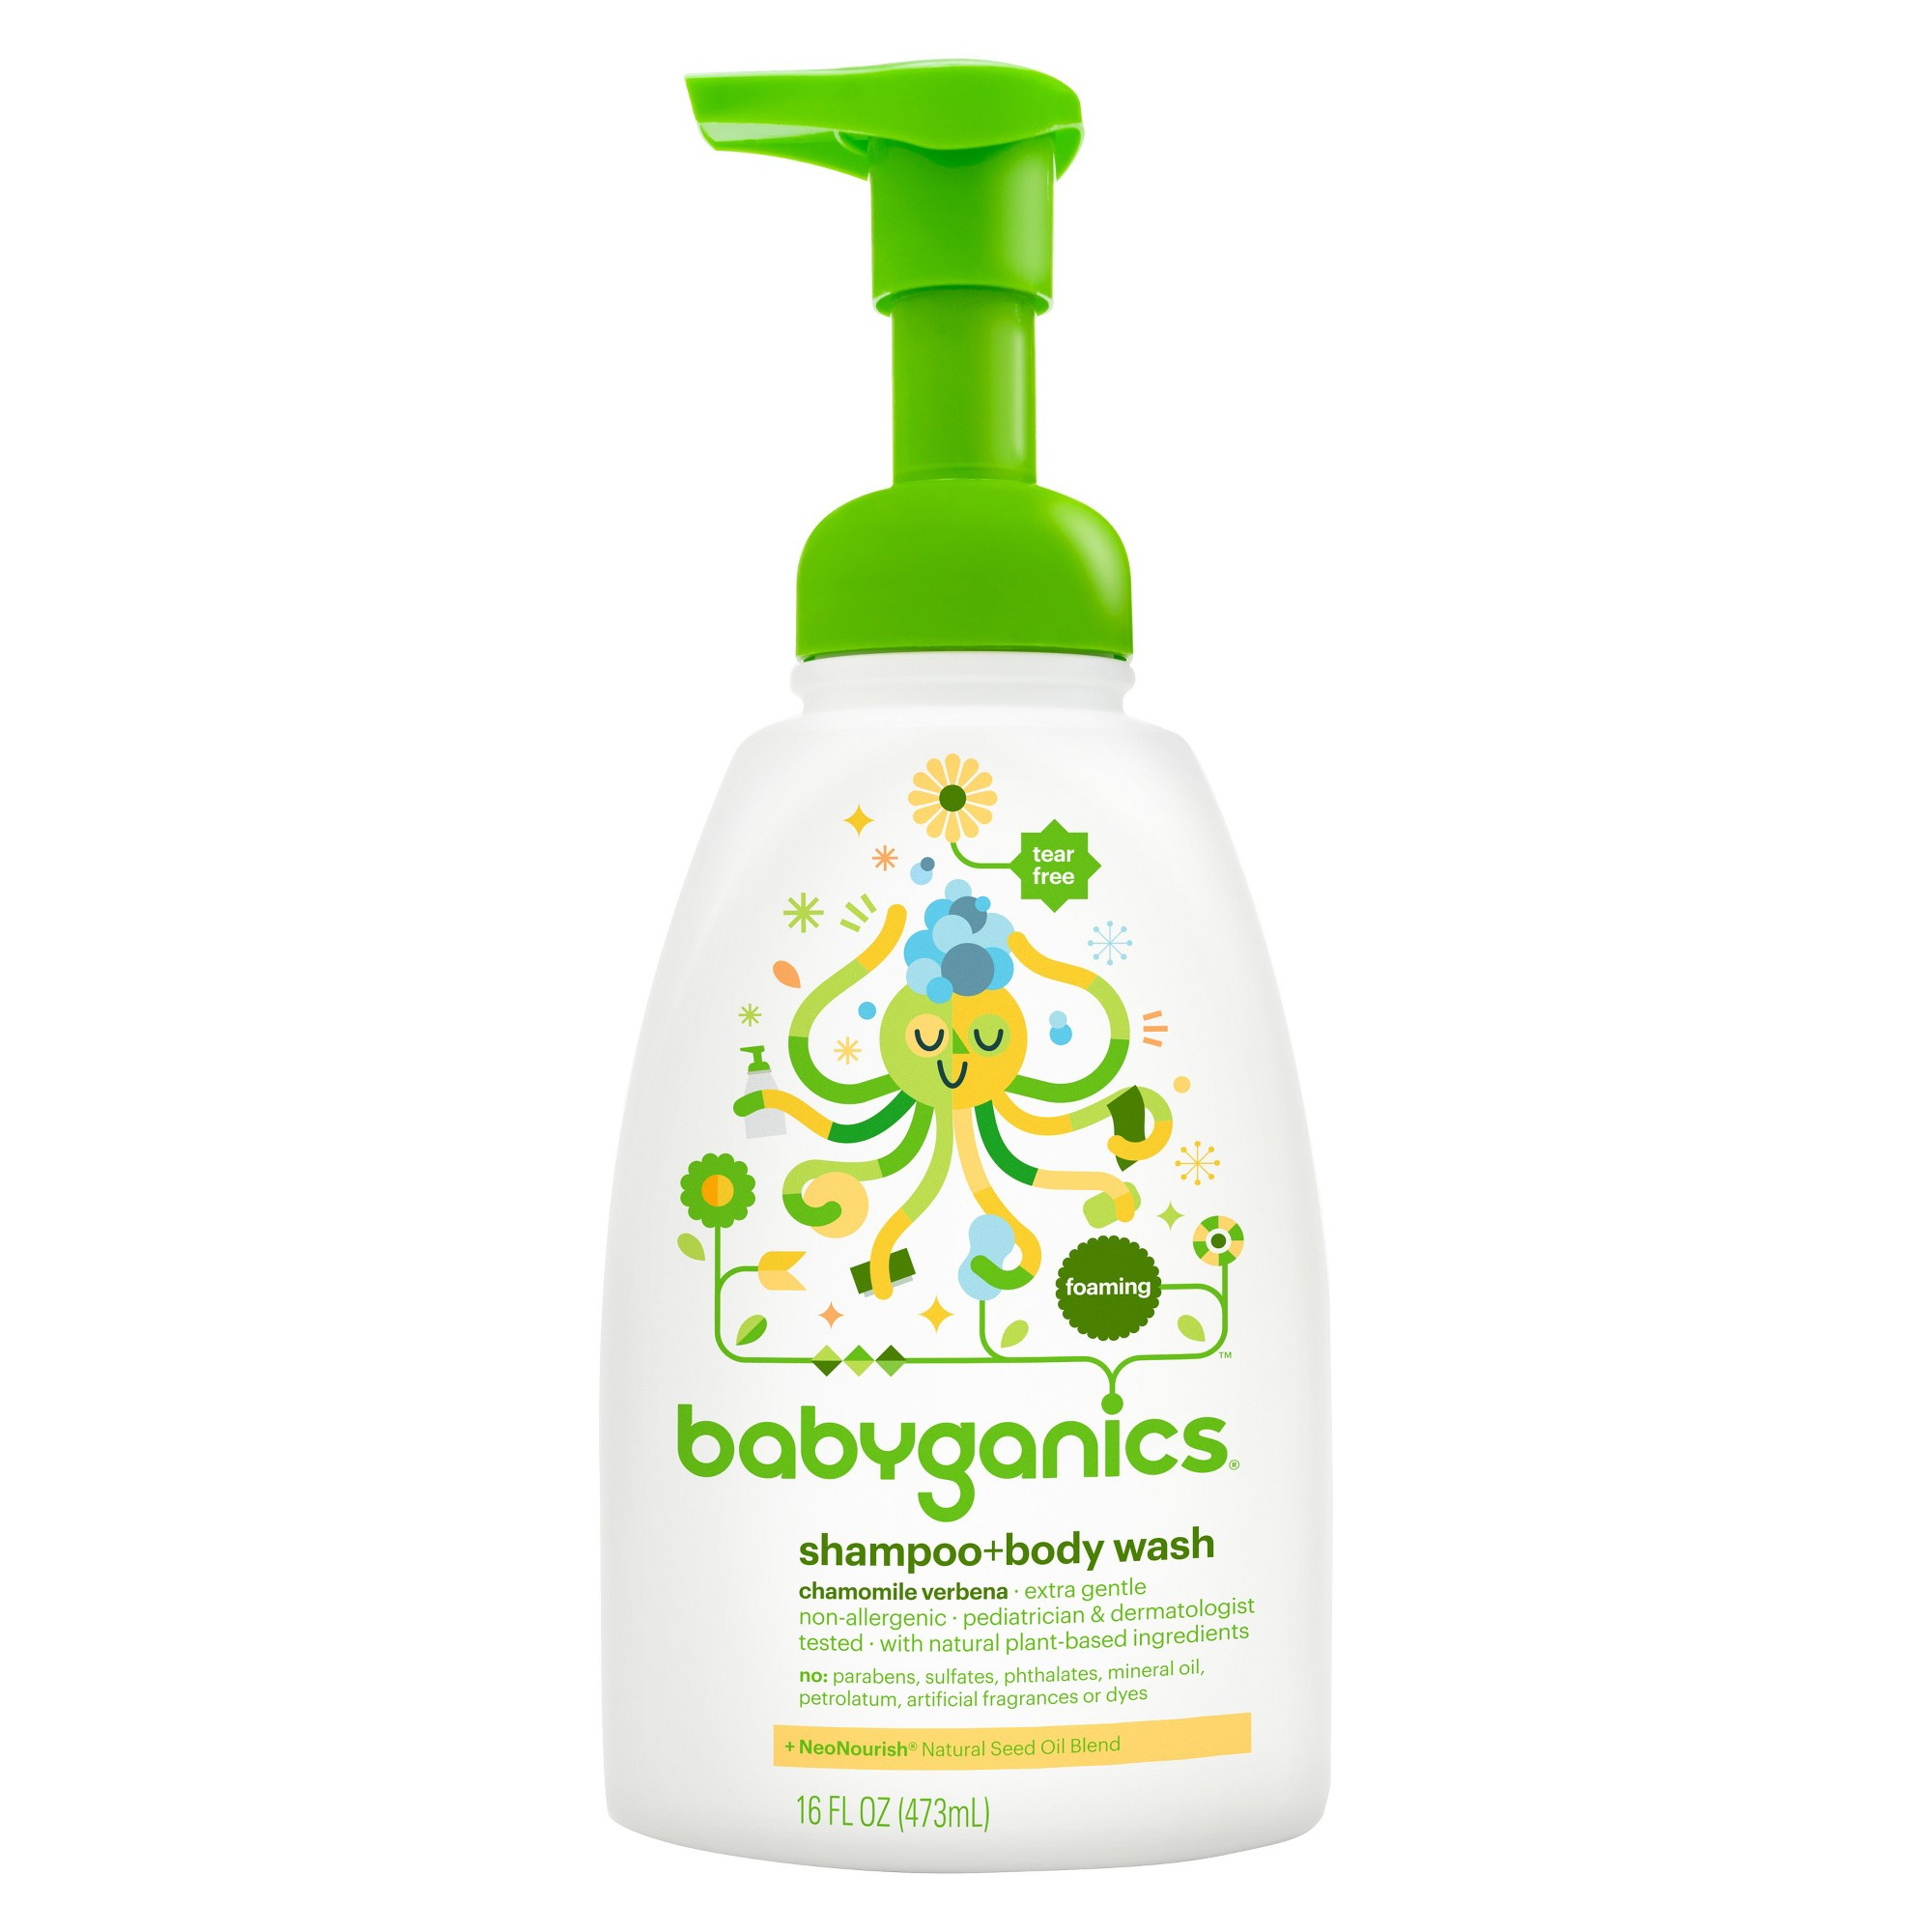 Babyganics Baby Shampoo Body Wash Pump Bottle 16 Fl Oz